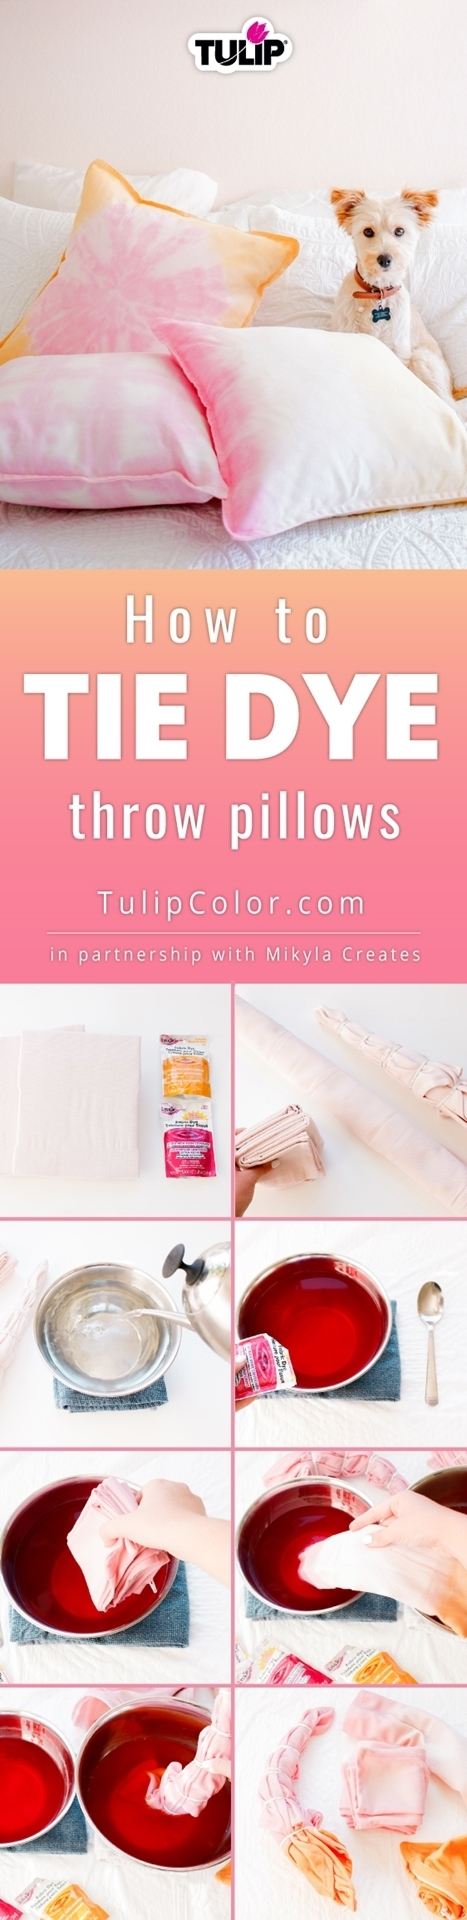 How To Tie Dye Throw Pillows